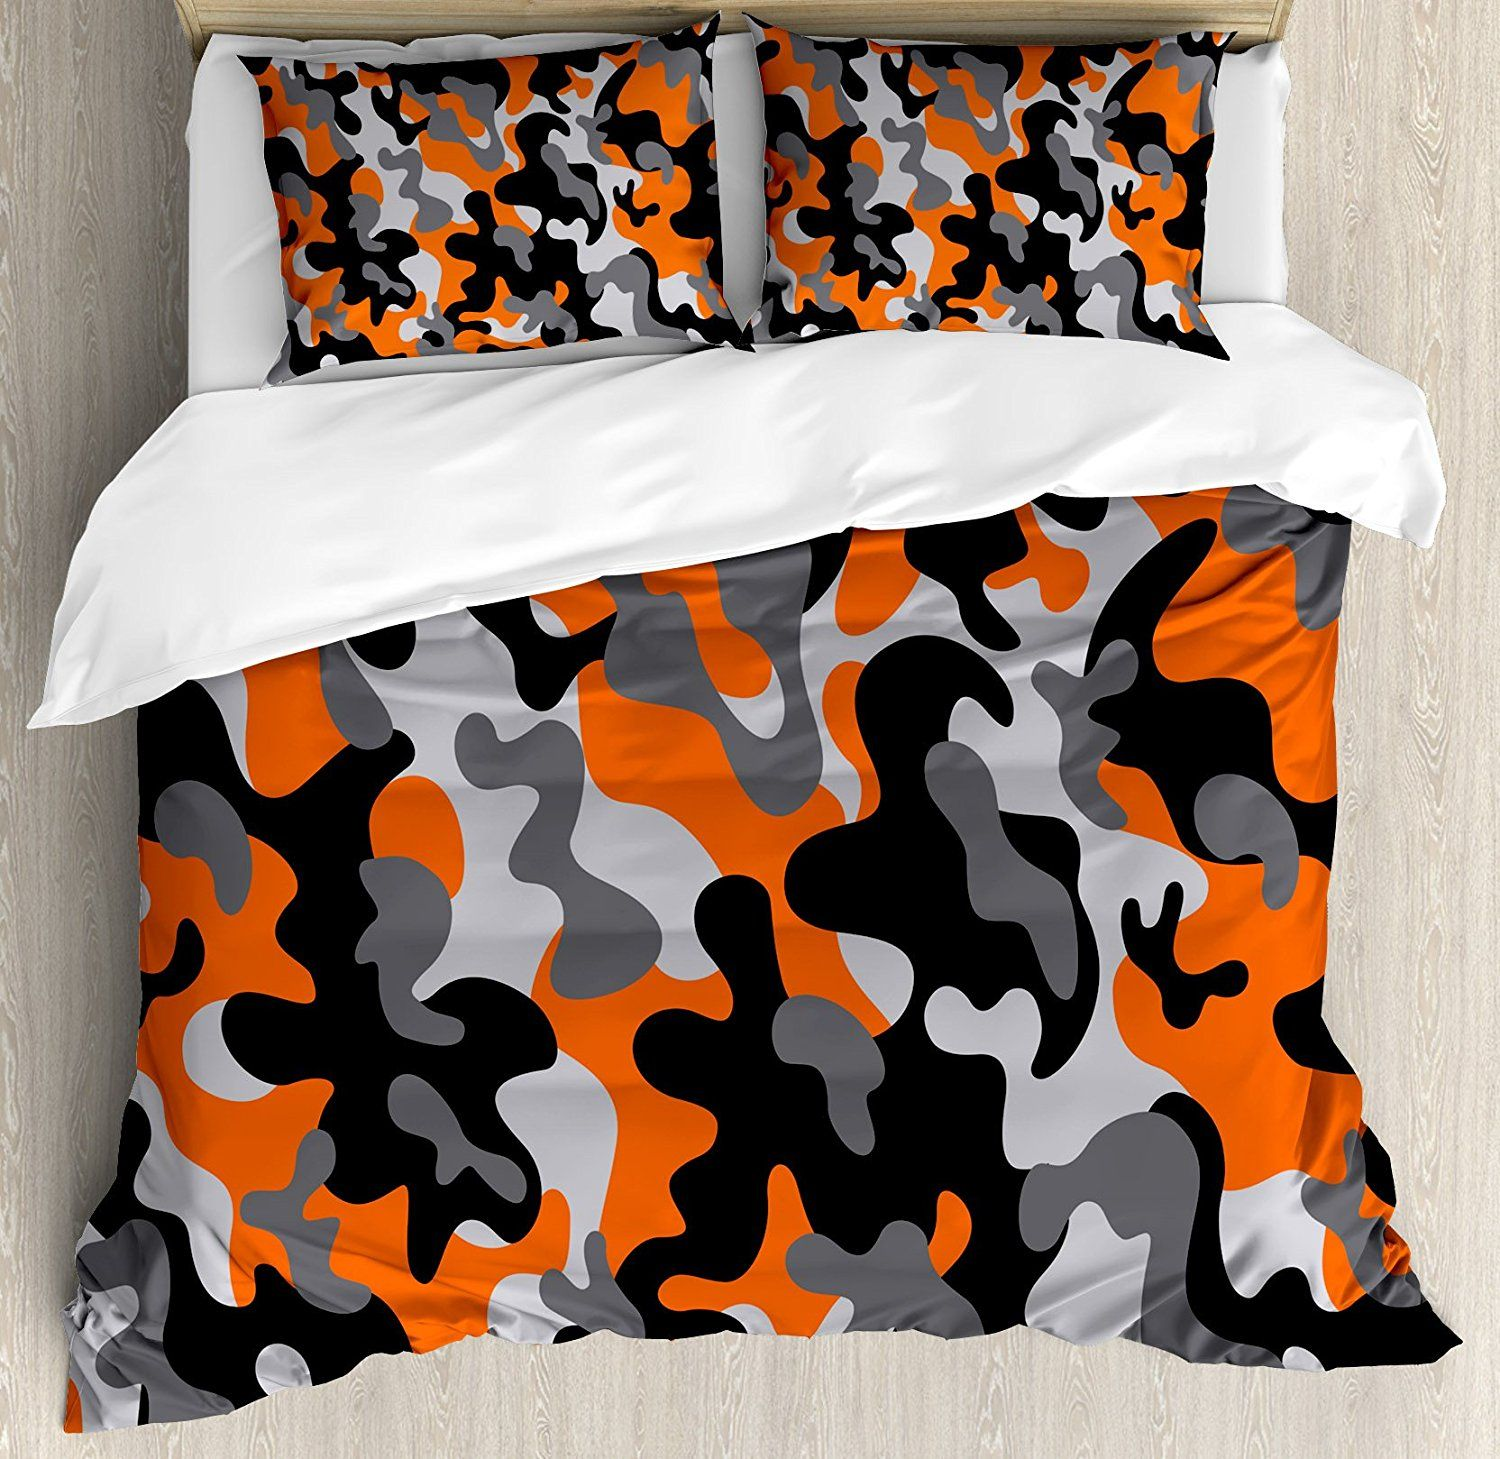 Military Camouflage Bedding Sets Lux Comfy Bedding Duvet Cover Sets Camouflage Bedding Modern Duvet Covers